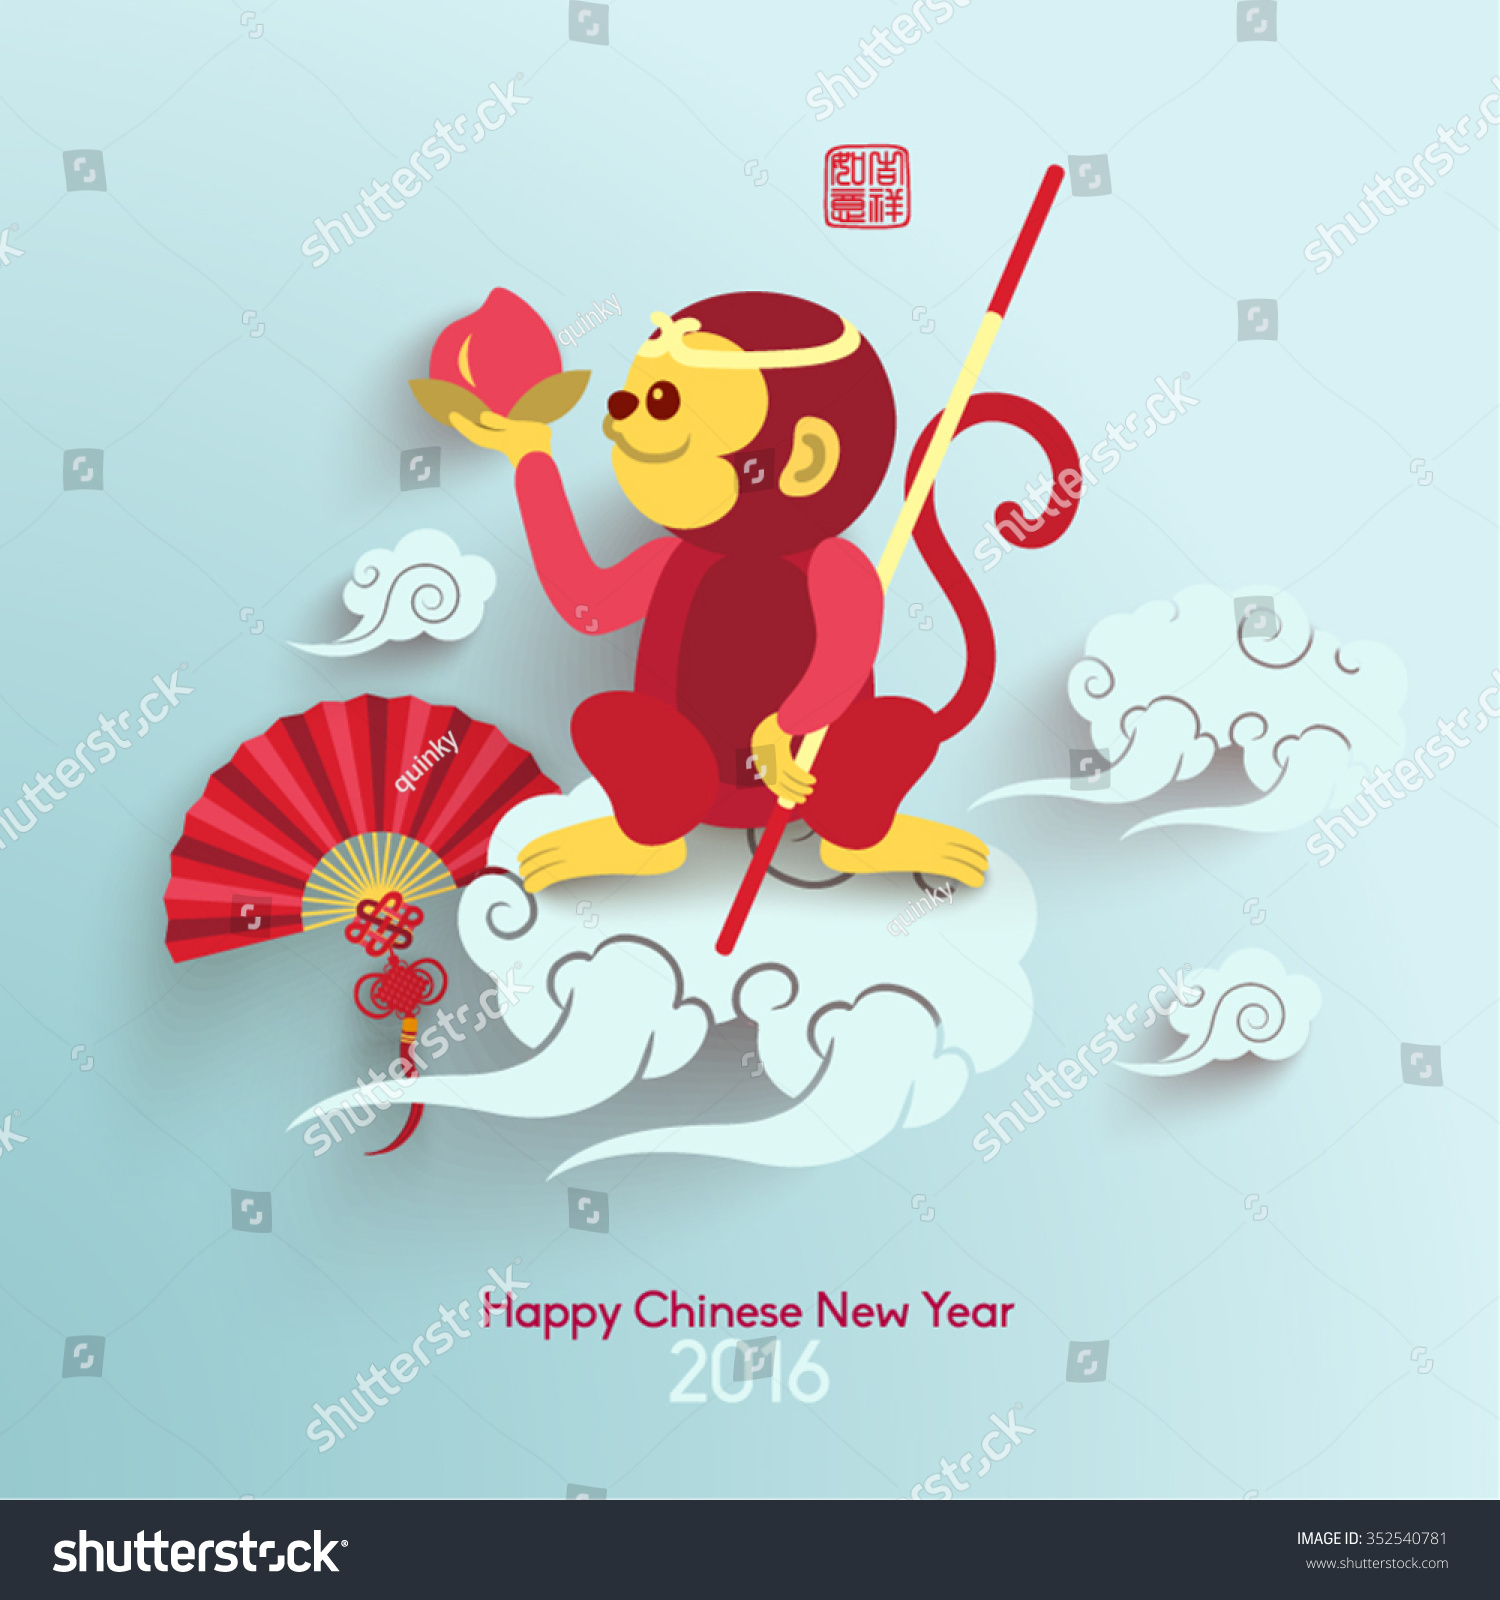 New Year Animations Free Stock Vector Oriental Happy Chinese New Year Year